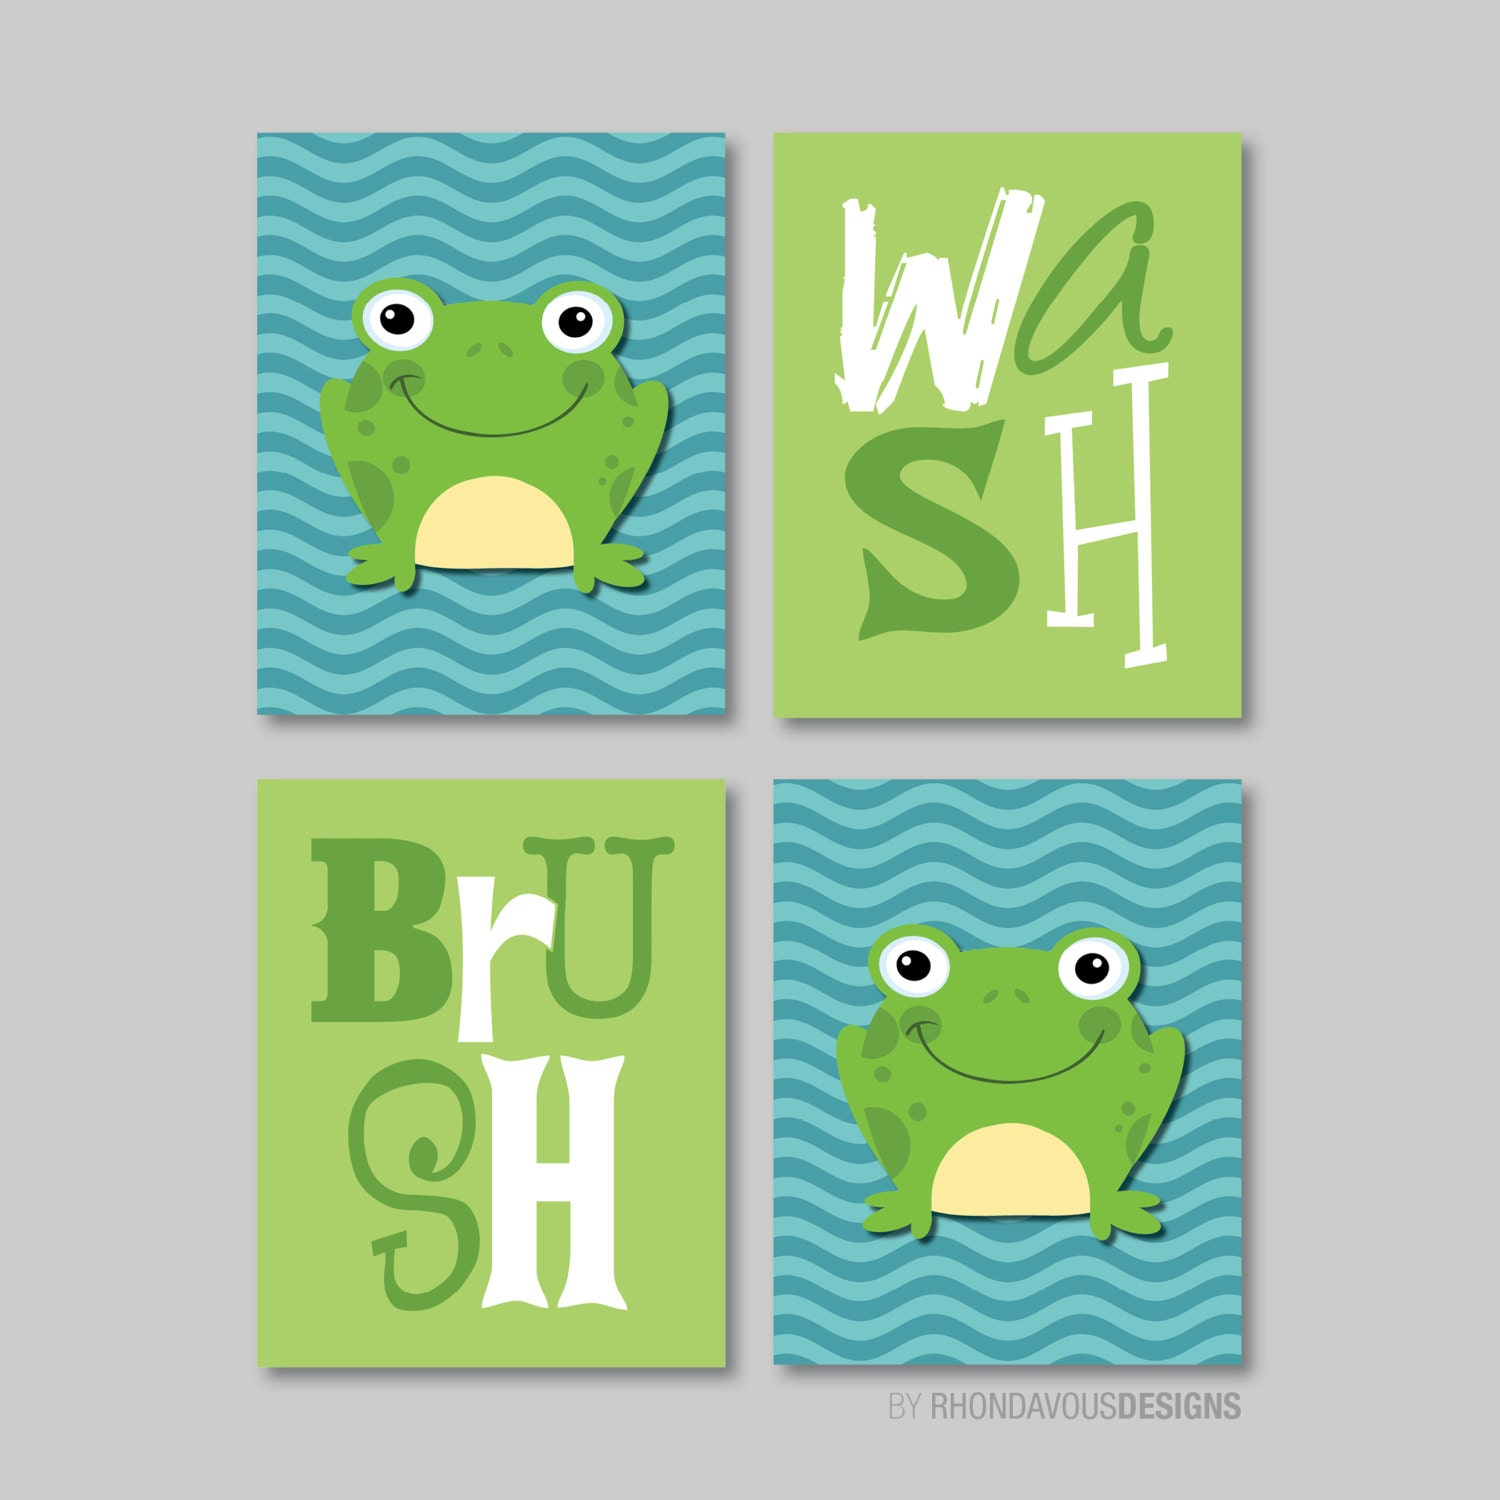 Child bathroom art child bathroom decor frog bathroom art for Frog bathroom ideas